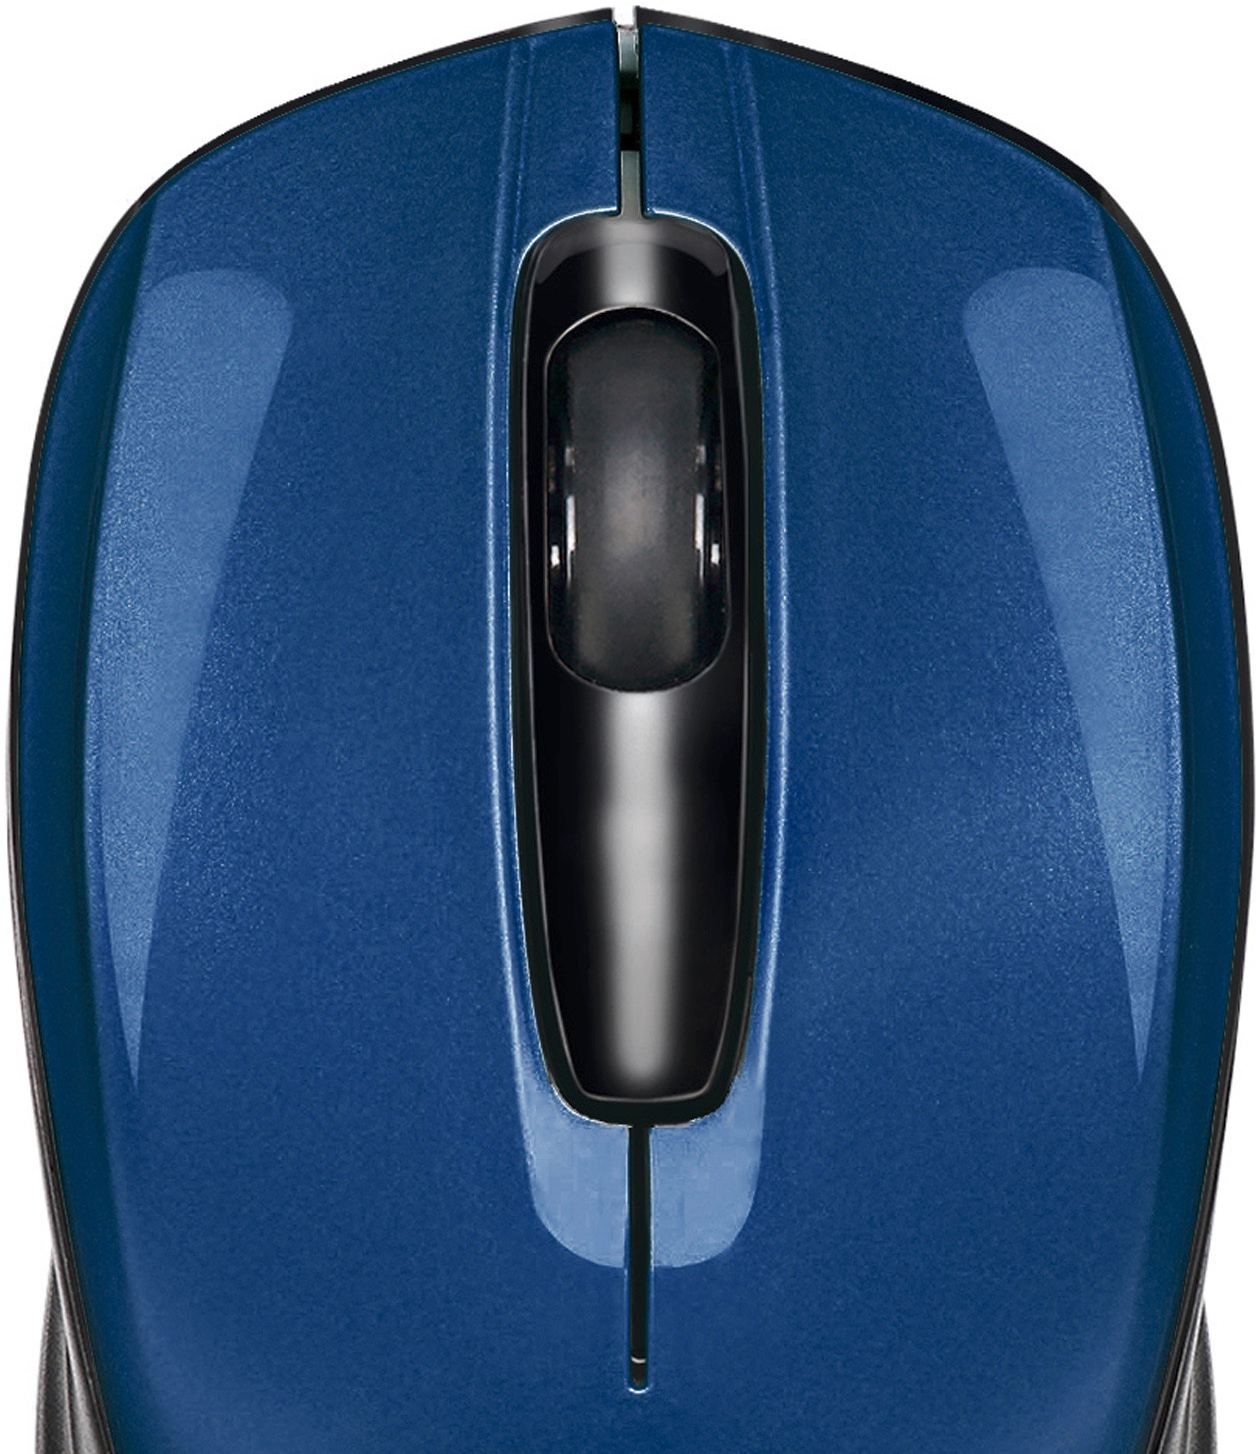 Adesso IMouse S50L   2.4GHz Wireless Mini Mouse Alternate-Image5